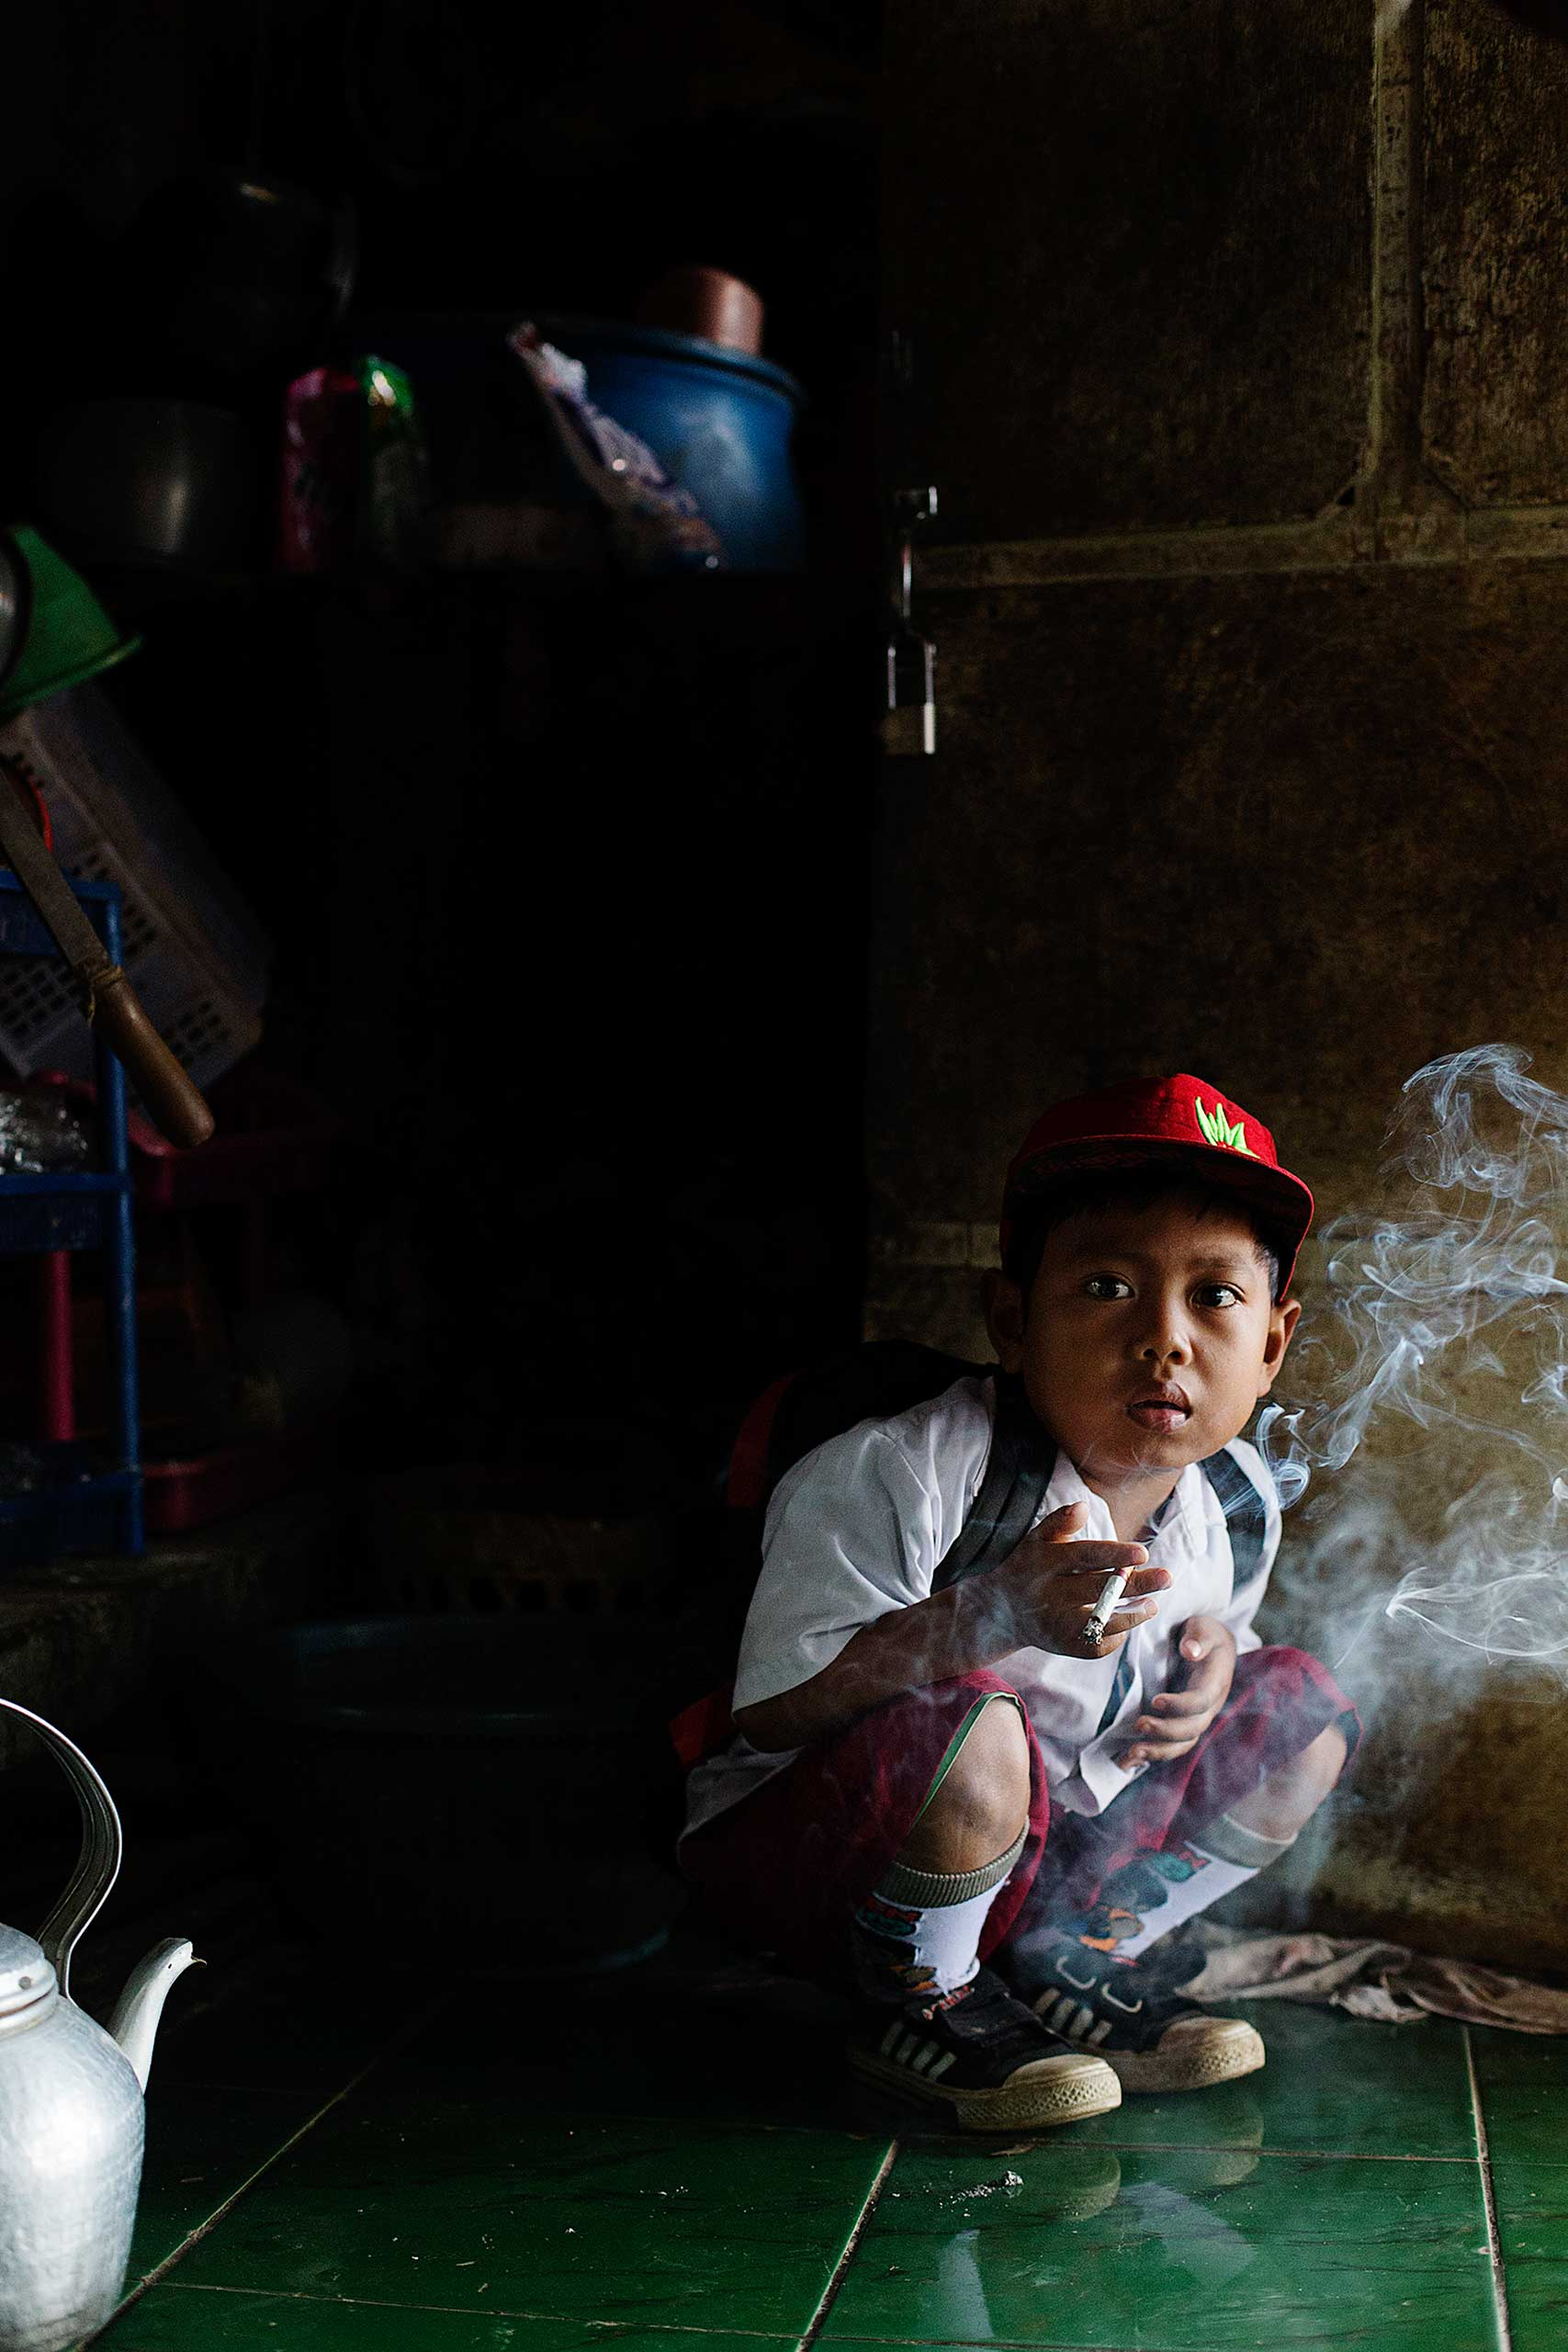 Dihan Muhamad has his first cigarette at 7AM at his home before he attends his first grade class in his village near the town of Garut, Indonesia on February 10, 2014.